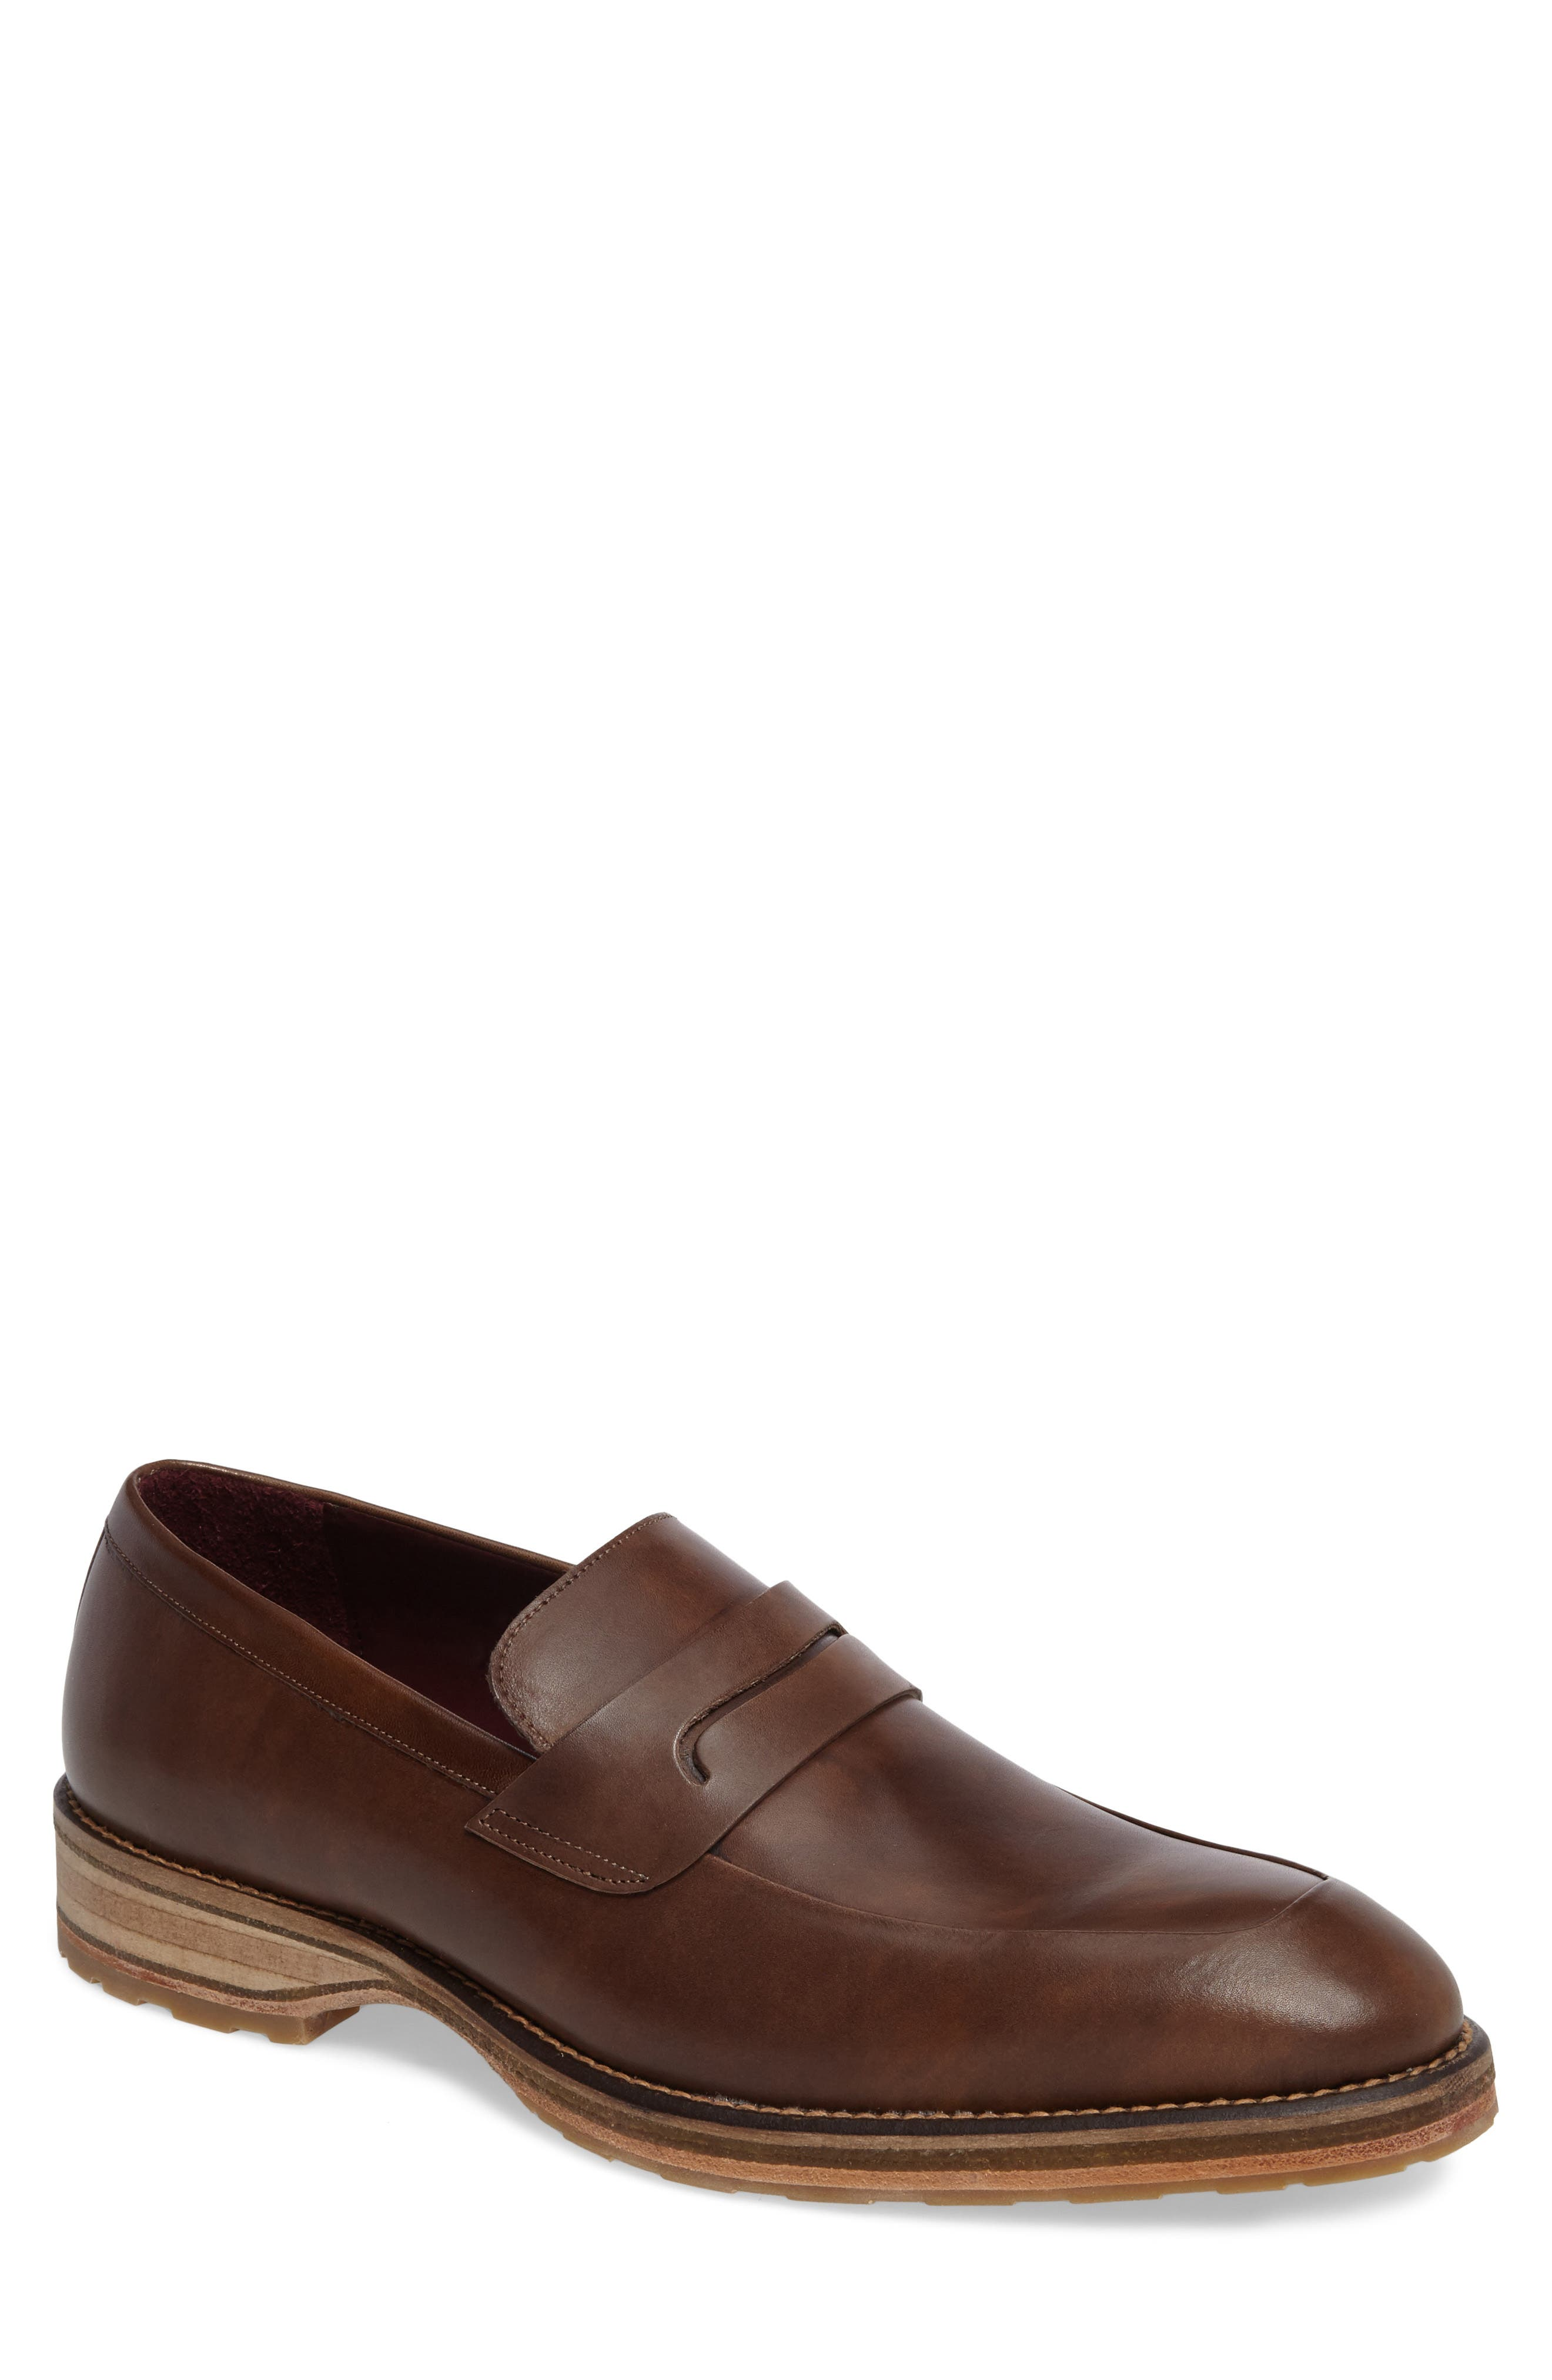 Cantonia Penny Loafer,                         Main,                         color, Taupe Leather